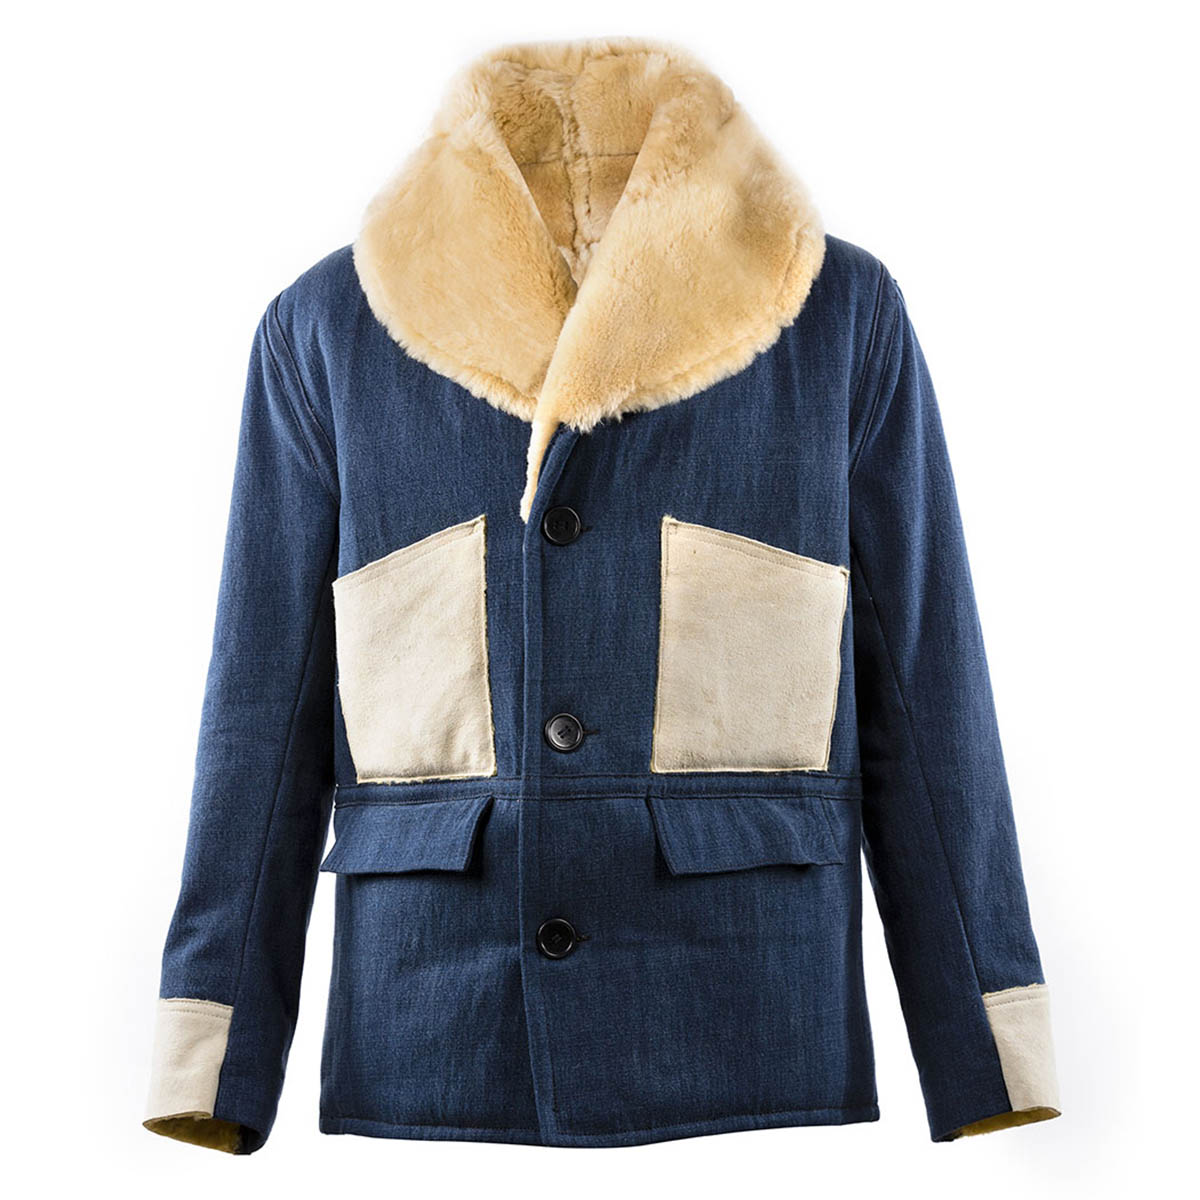 ea59678cb75 Blue Morrison Denim and Shearling Jacket by Chapal buy at SUNDAY30.COM